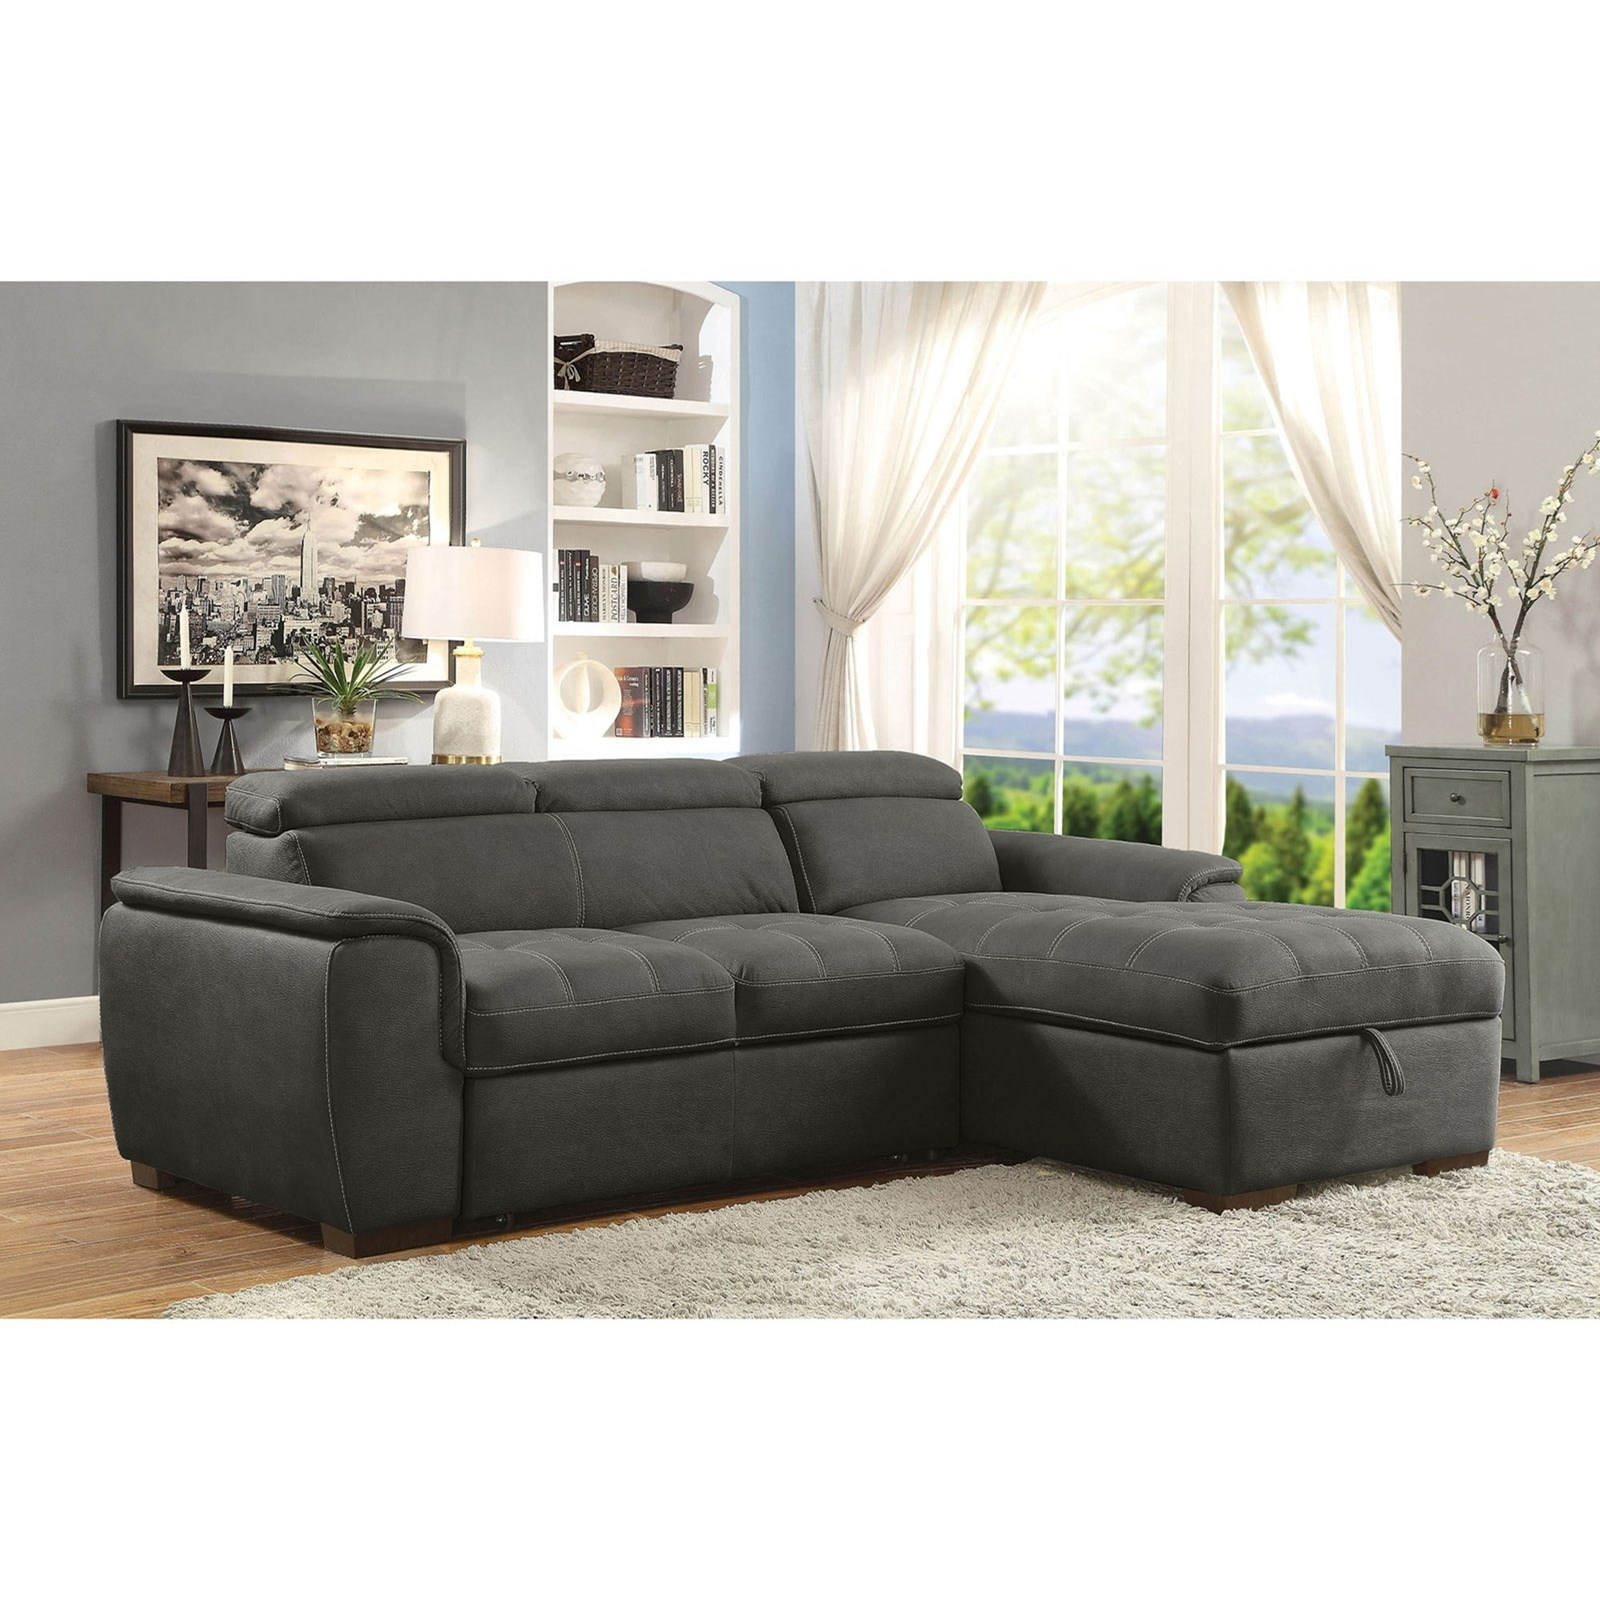 Patty Sofa Sectional at Household Furniture